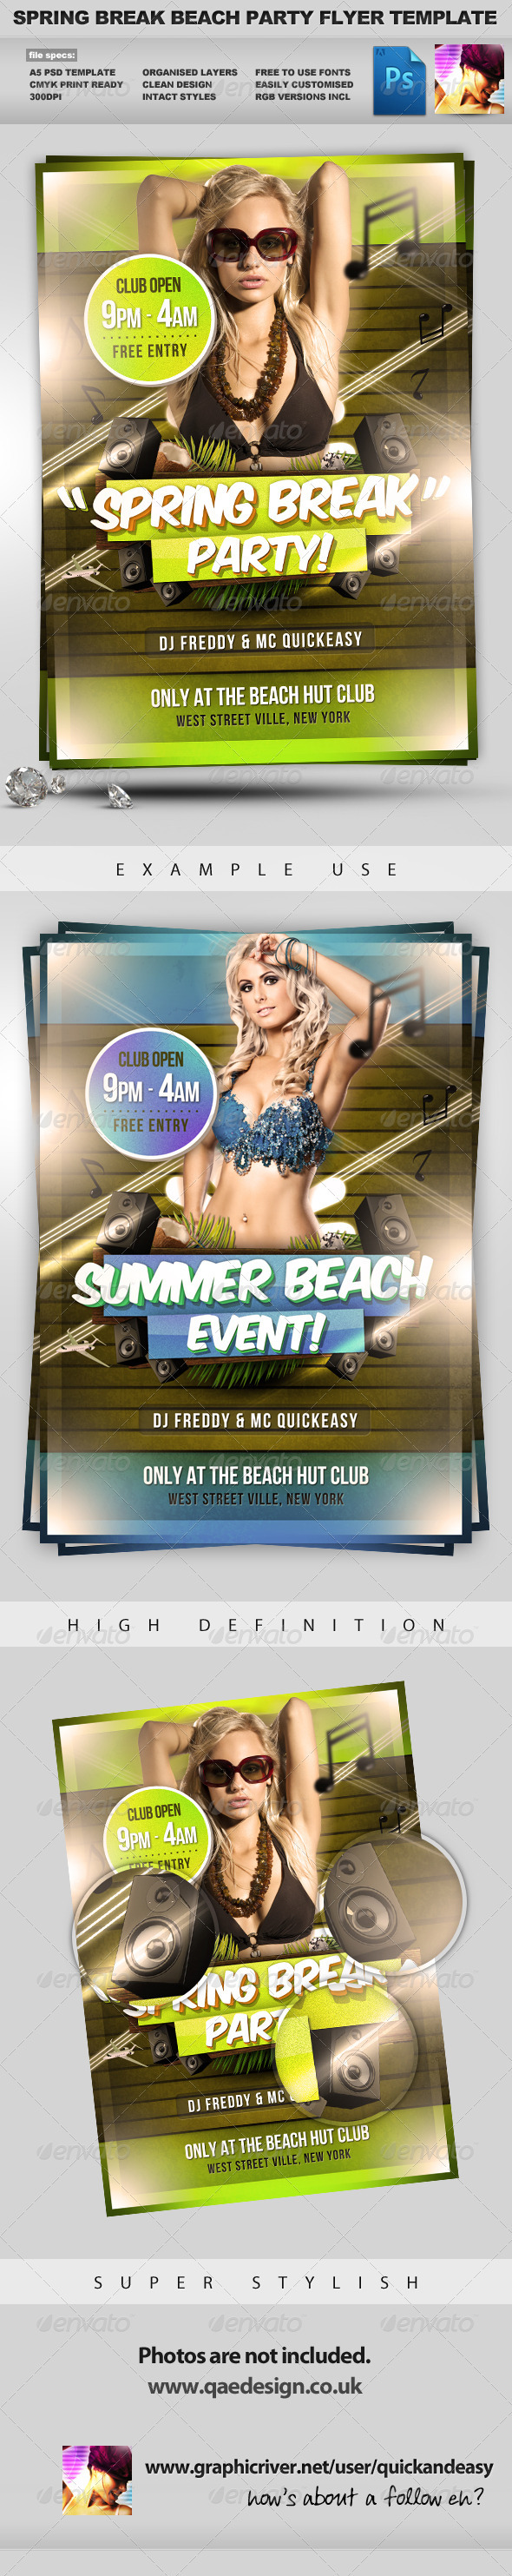 Spring Break Flyer Template - Clubs & Parties Events